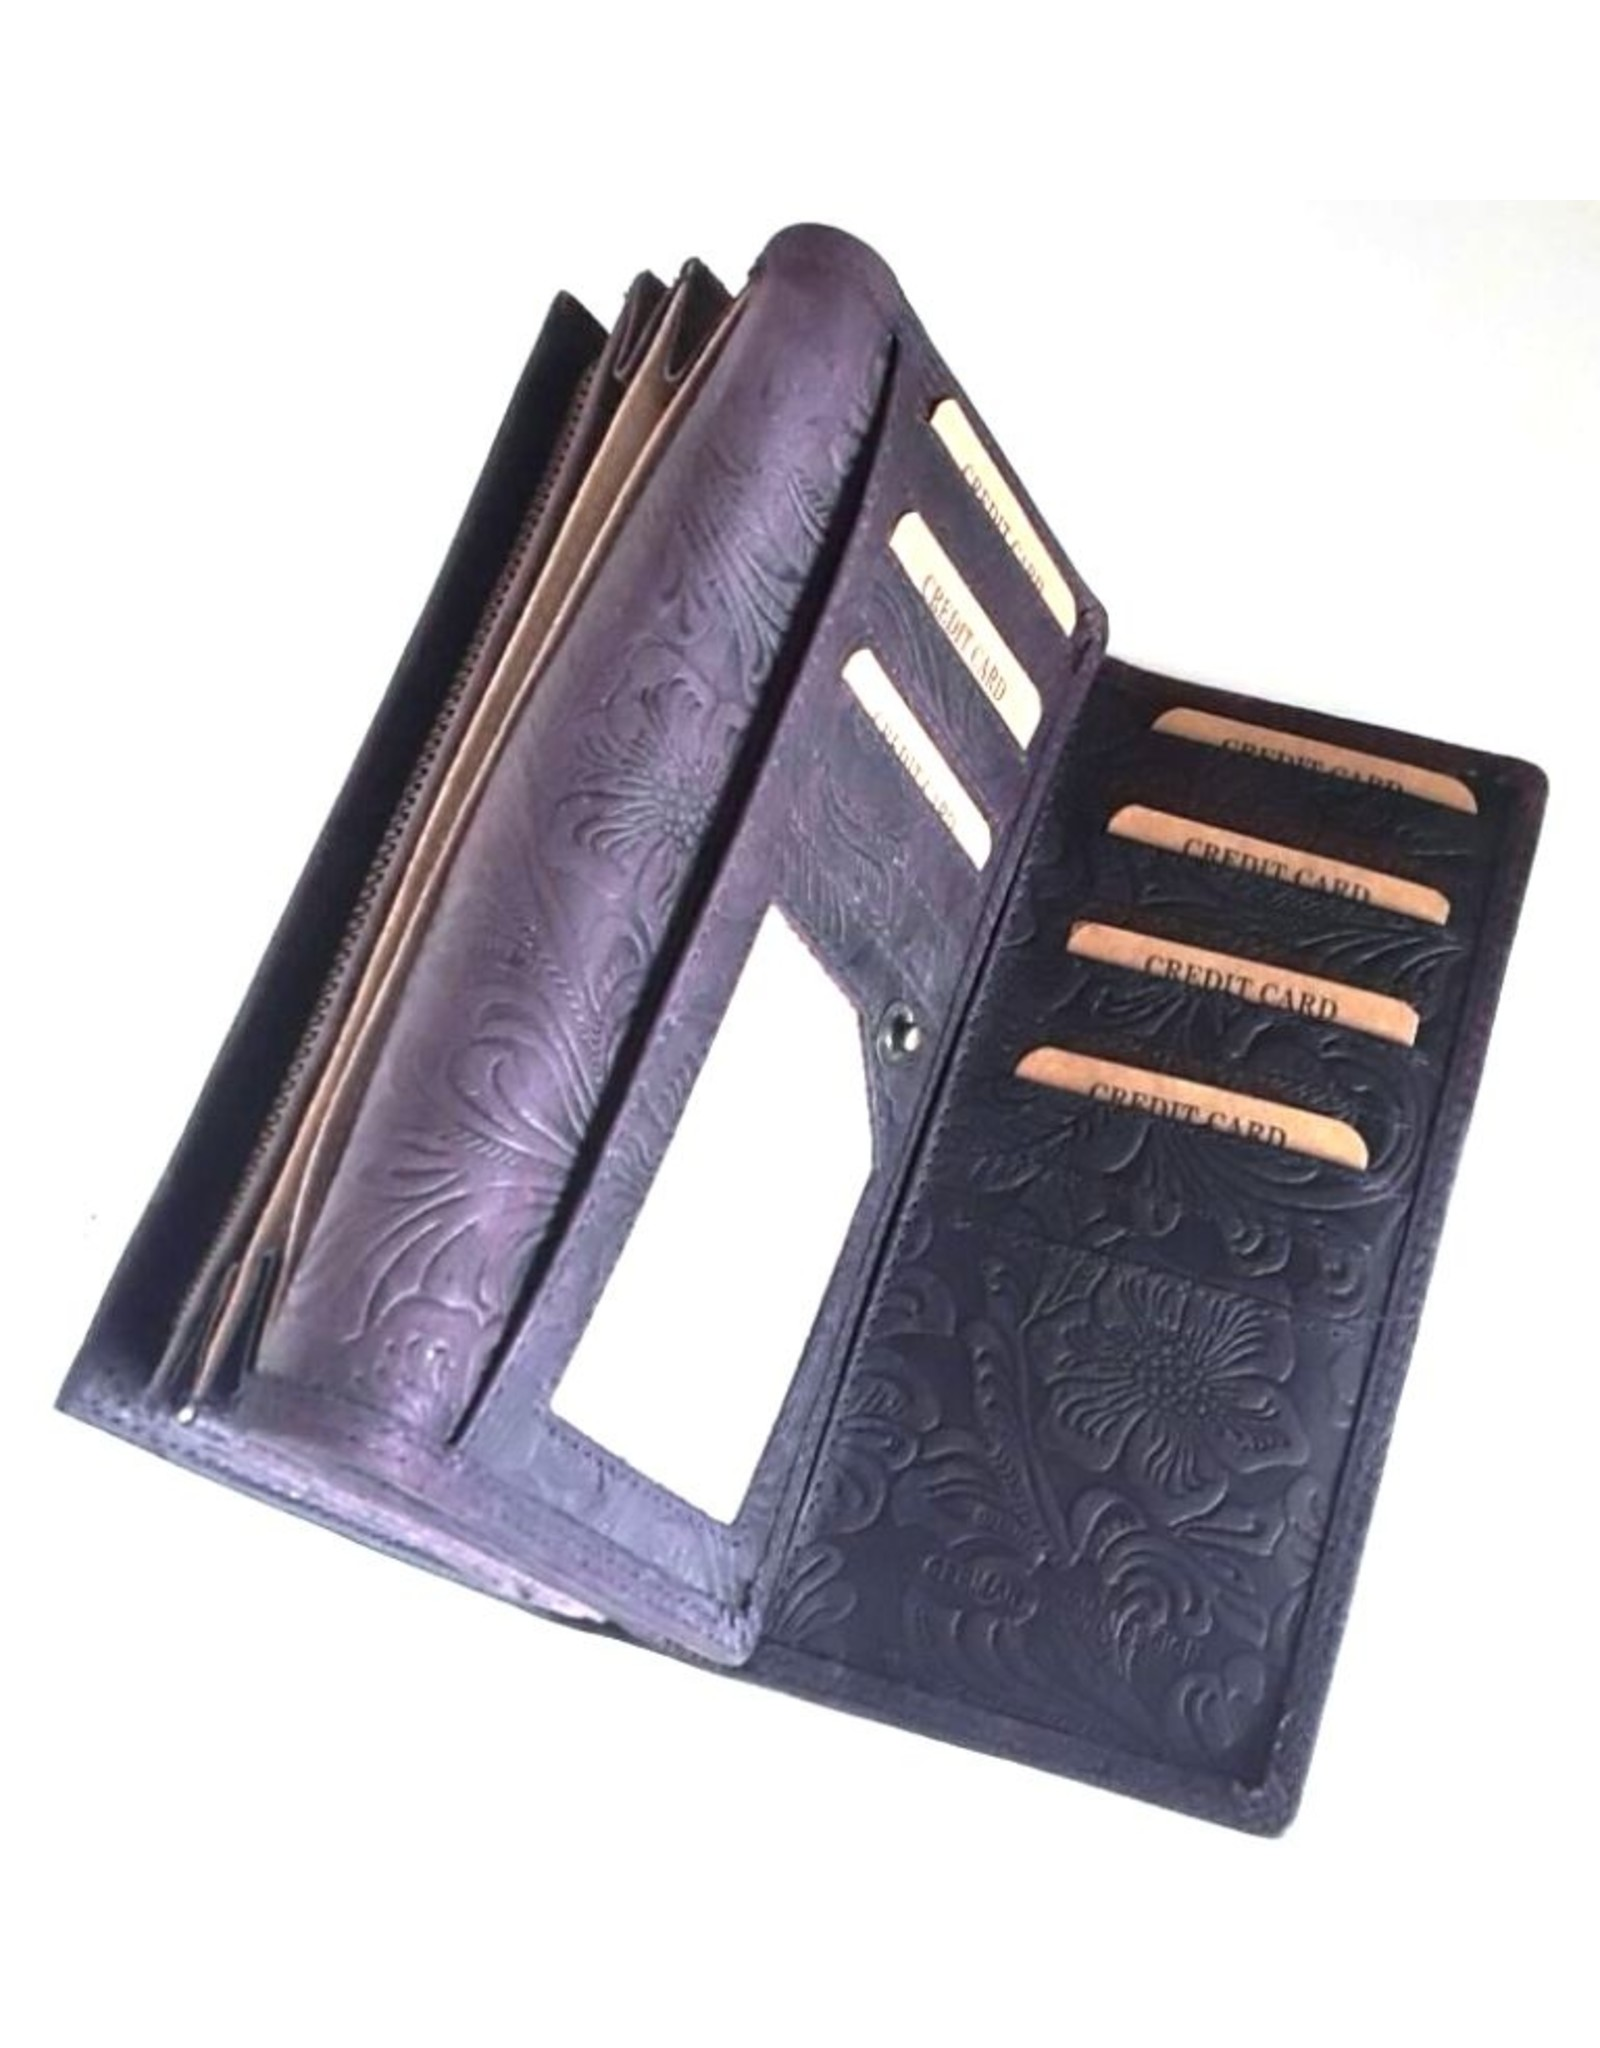 Hunters Leather Wallets -   Leather purse with embossed floral pattern Hunters purple